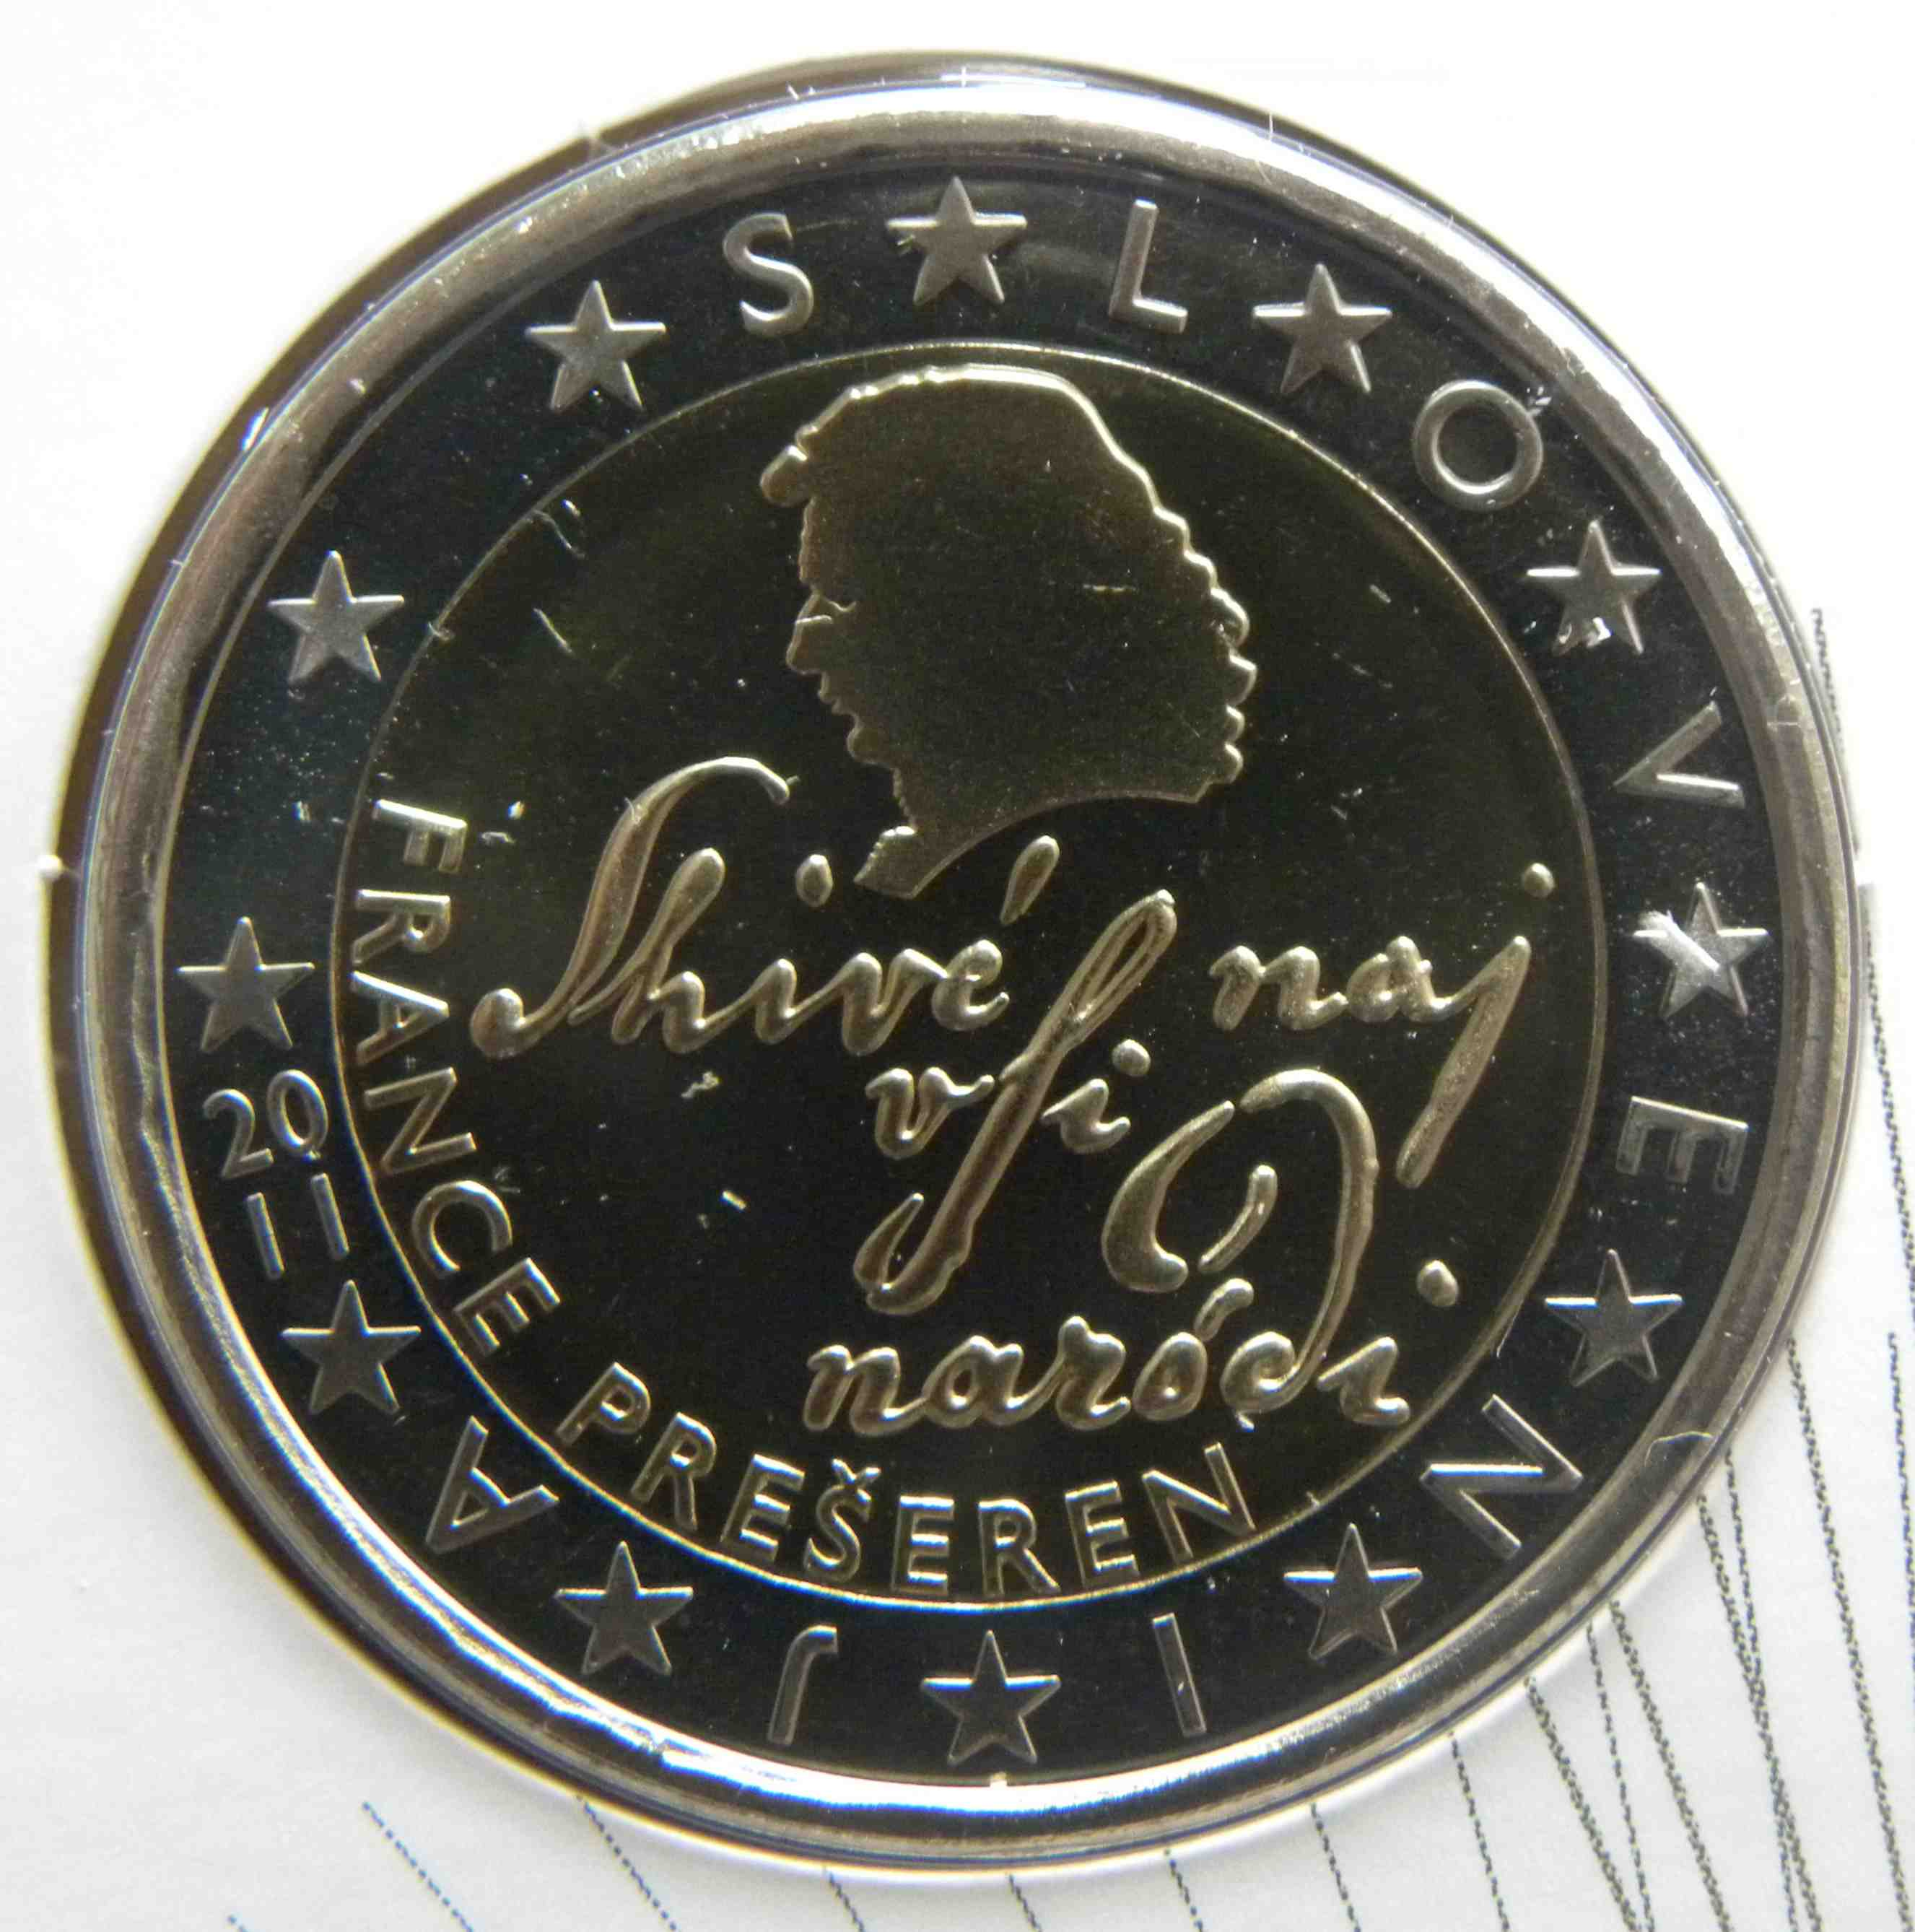 slovenia 2 euro coin 2011 euro the online eurocoins catalogue. Black Bedroom Furniture Sets. Home Design Ideas